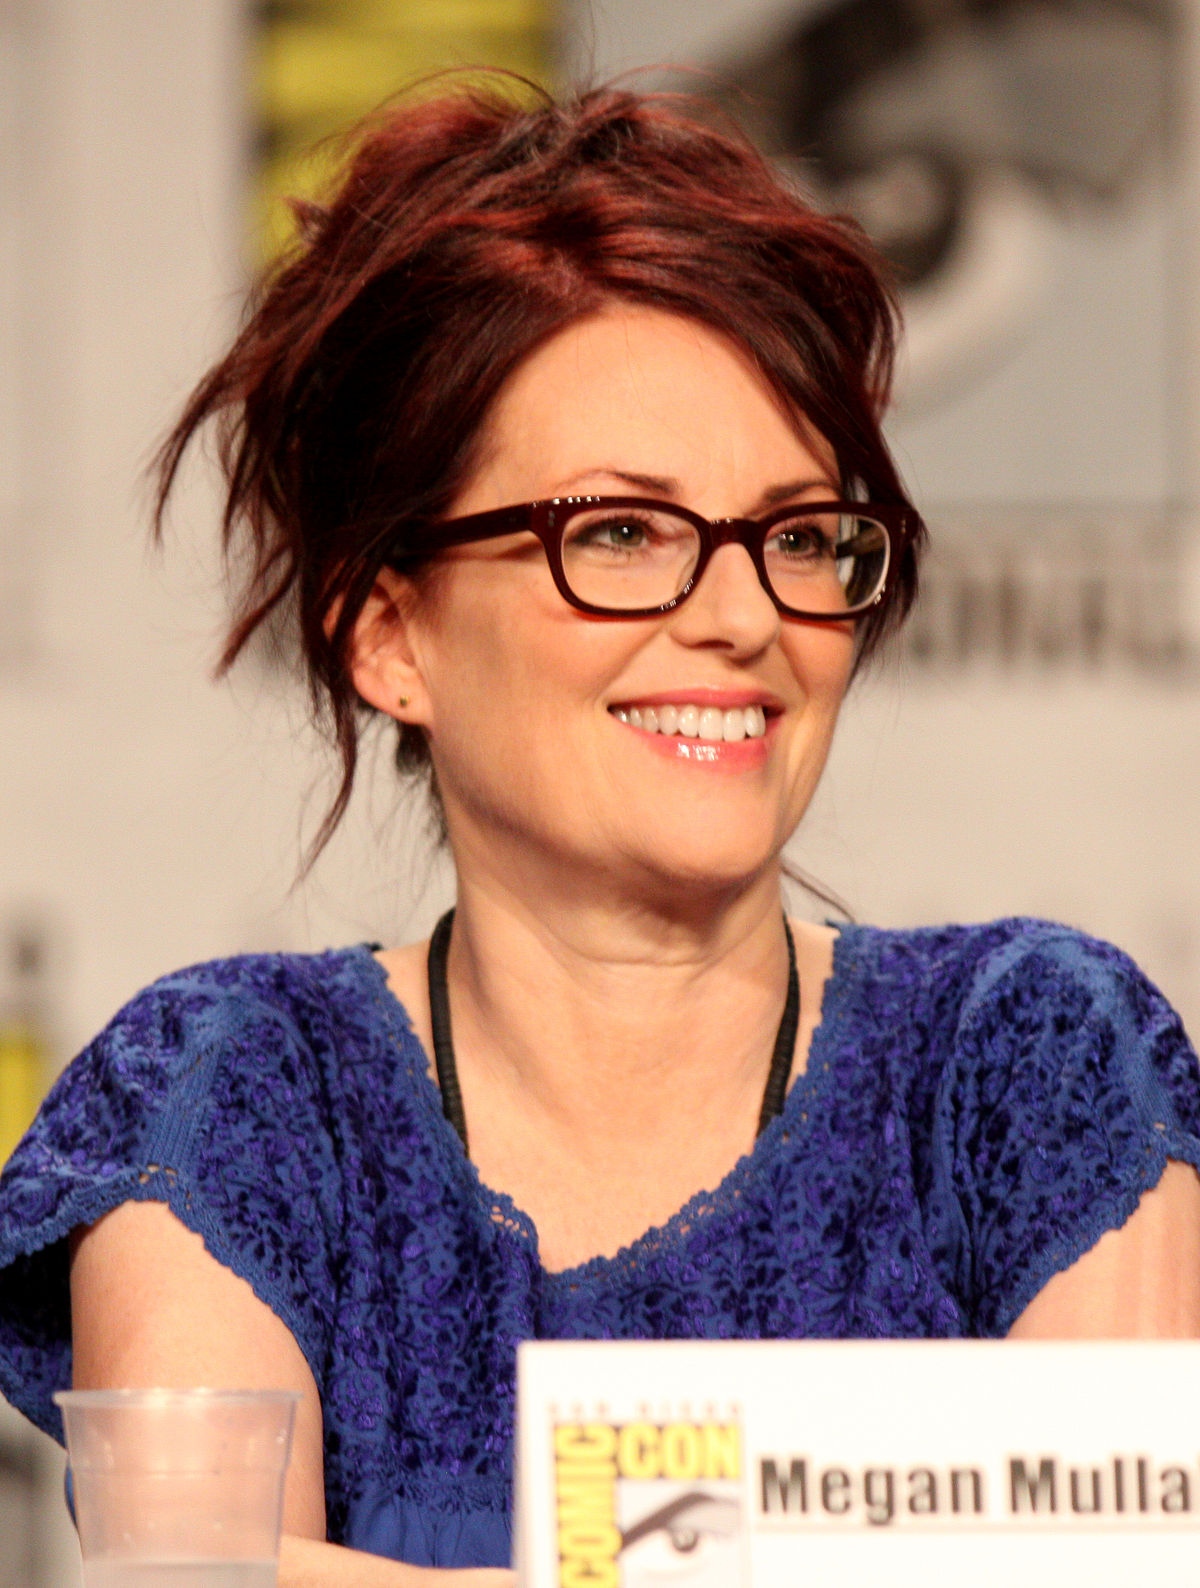 Megan Mullally Wikiquote